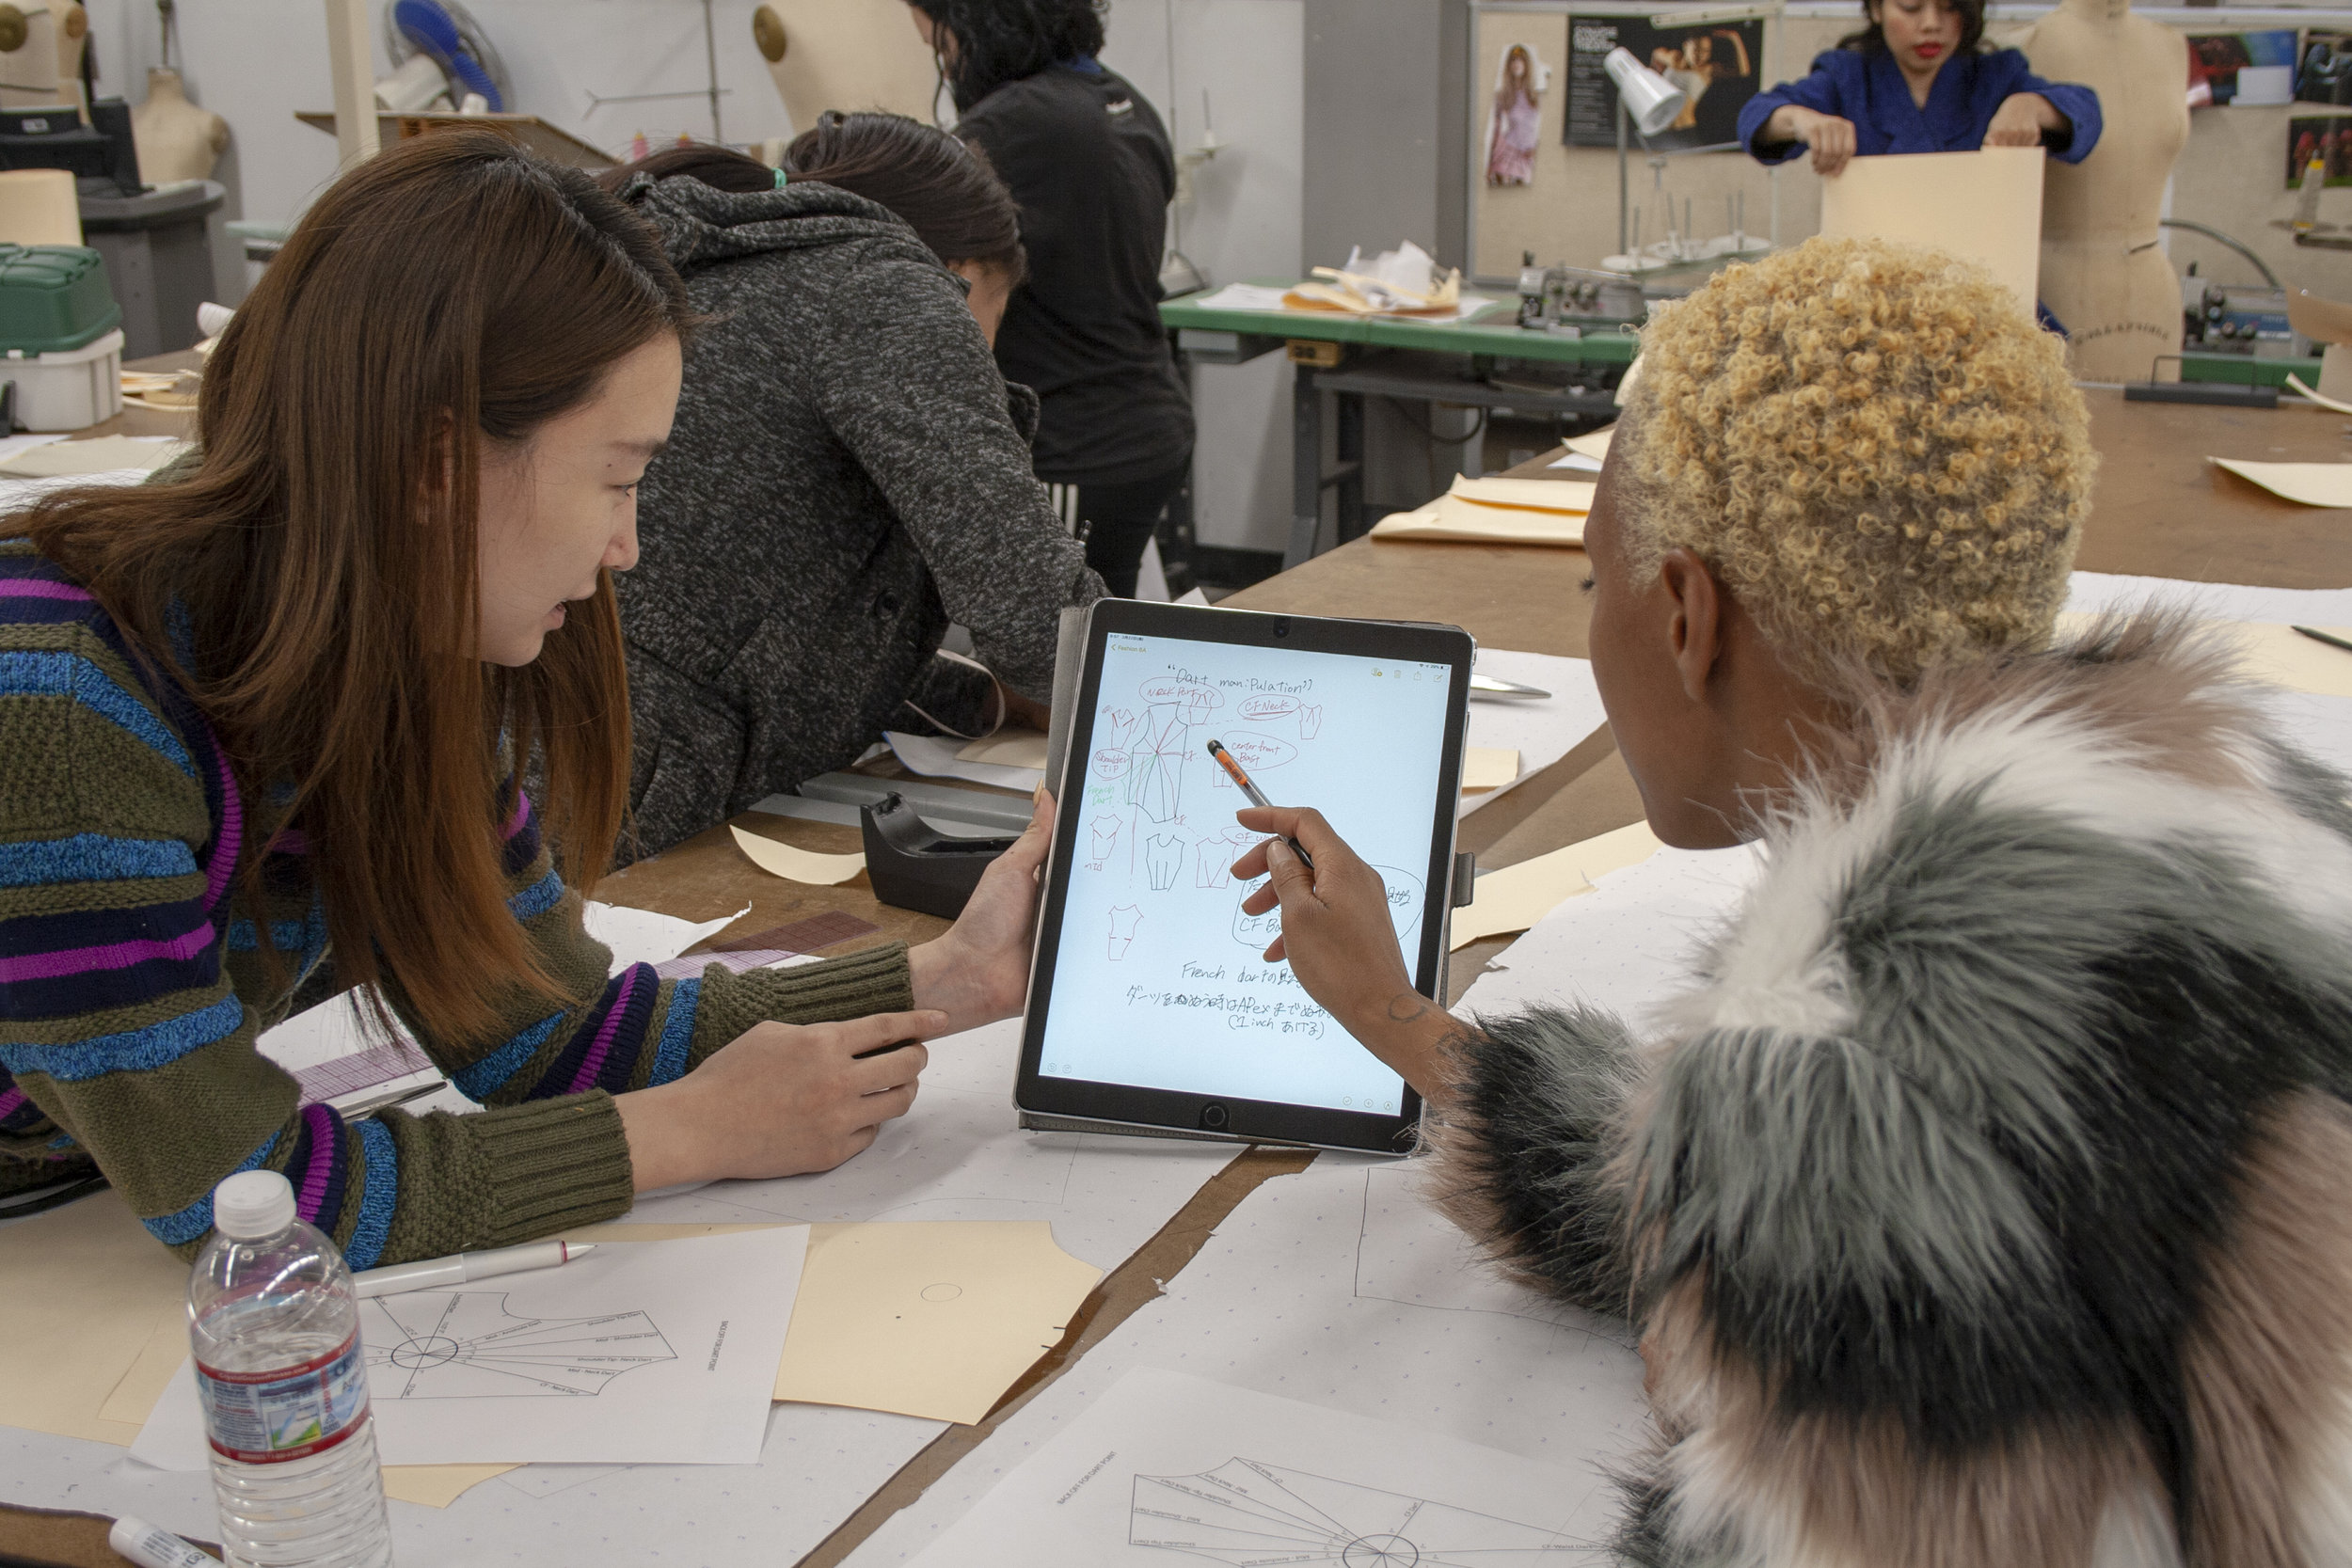 On Feburary 22, 2019 within the Fashion Department in Santa Monica College (SMC) where Porscha Woodard learns, and works on the basics of tracing. Professor Sofi Khachmanyan teaches the class Fashion 6A, where she helps the students on a very close level. Kyoka Takahashi, classmate of Porscha helps her understand how the design is to be made by showing her persoanl notes.